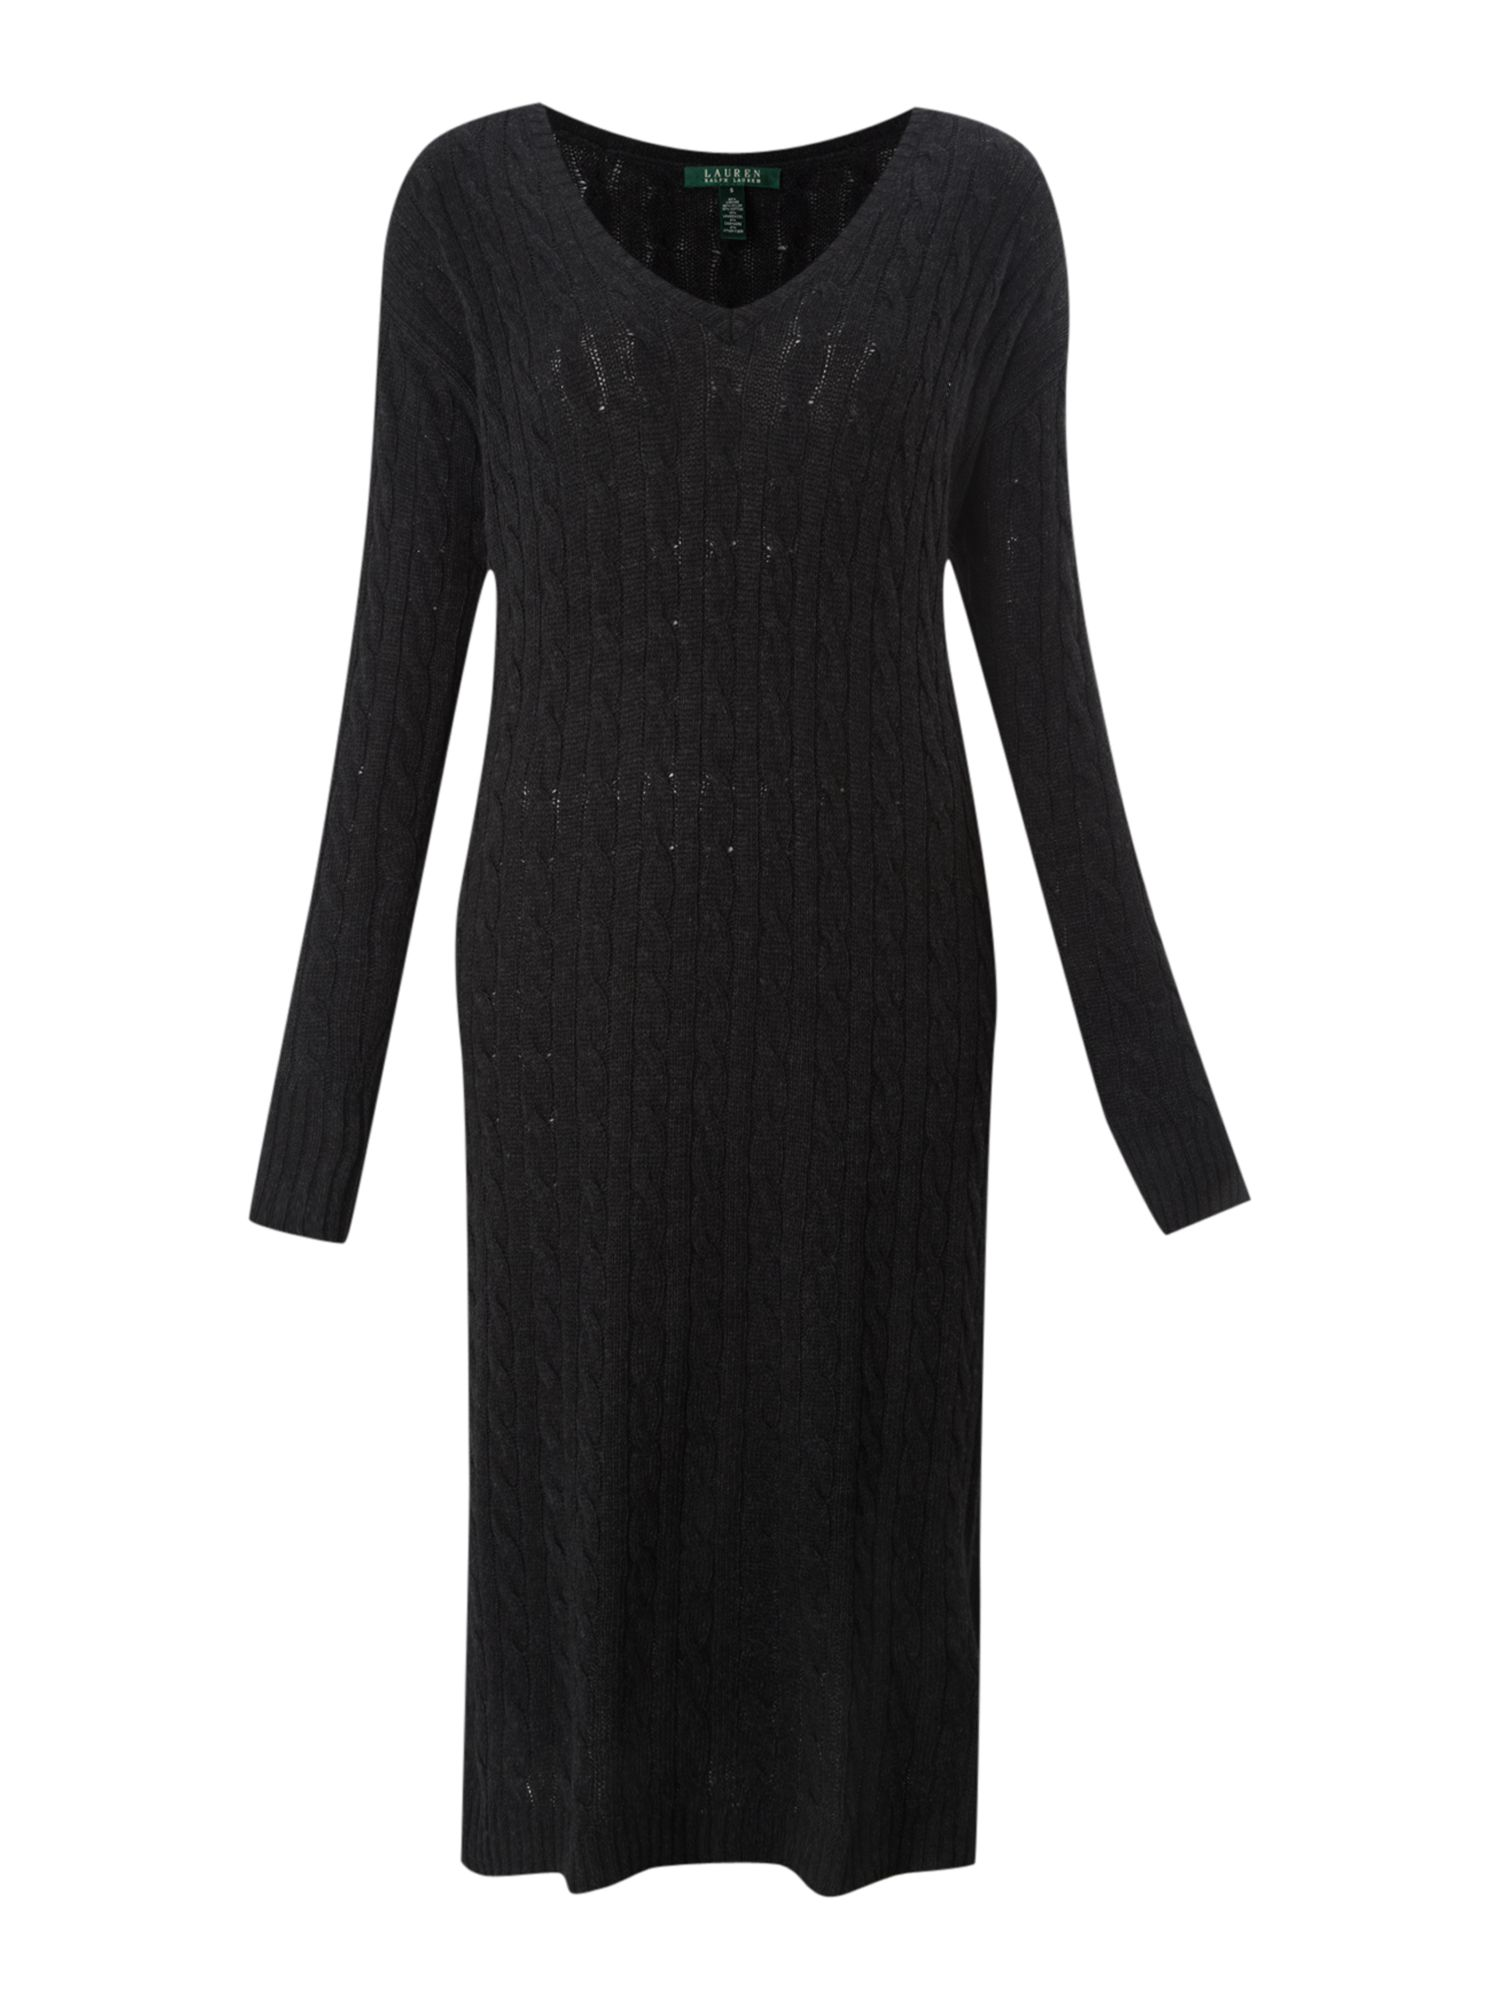 Kriseta cable knit v-neck dress